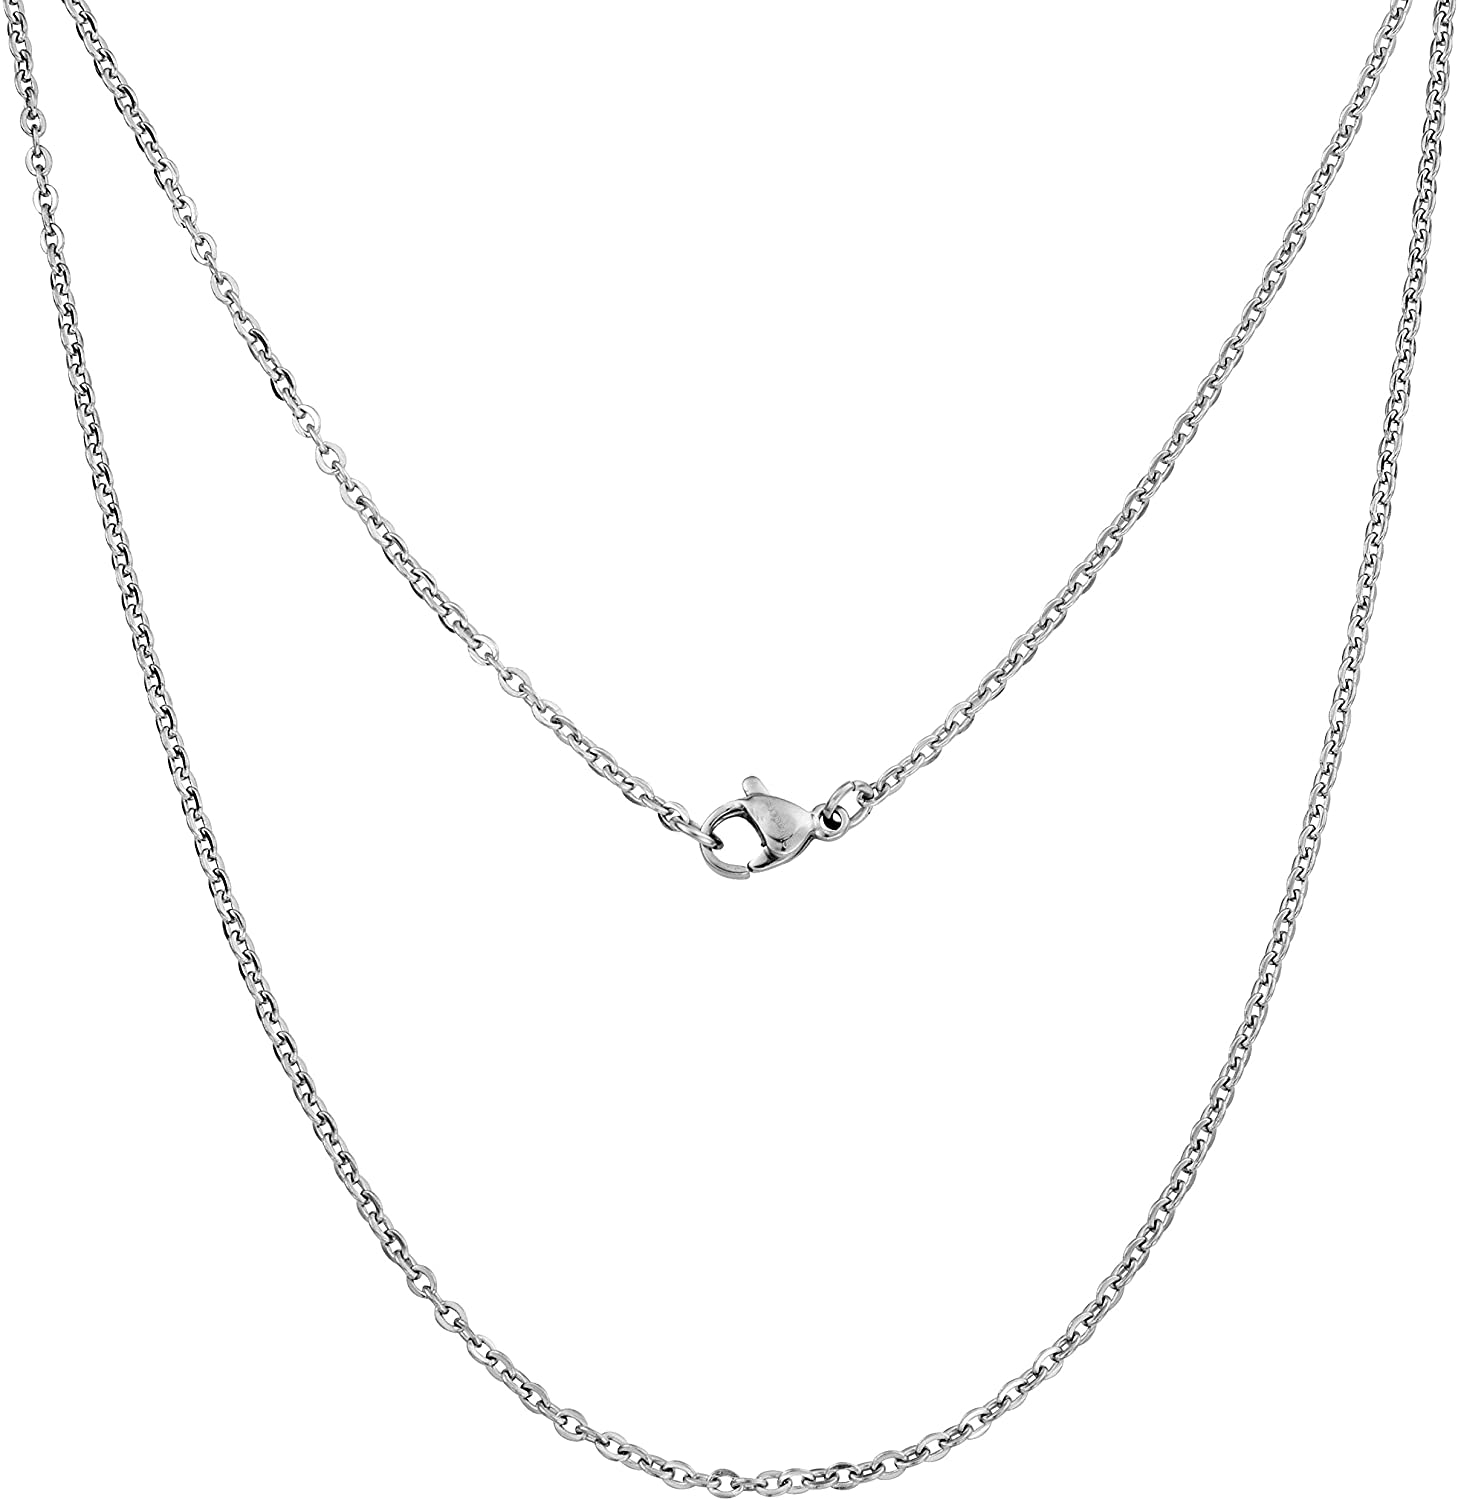 Silvadore 3mm Belcher Mens Necklace - Silver Chain Stainless Steel Jewelry - Rolo Neck Link Chains for Men Man Male Women Boys Girls - 18 20 22 24 26 30 36 Inch